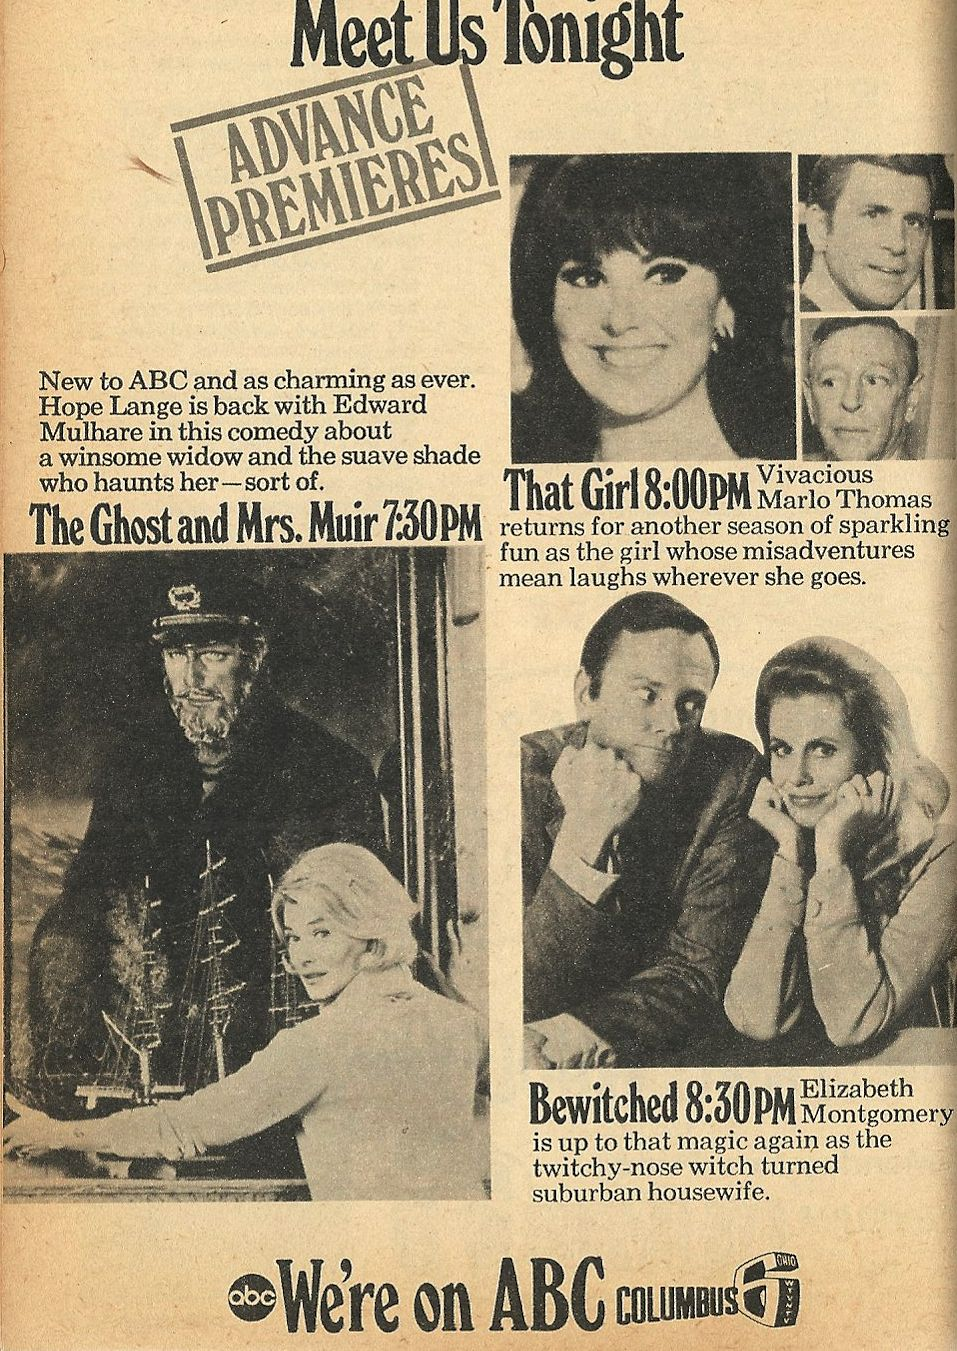 Old TV ad